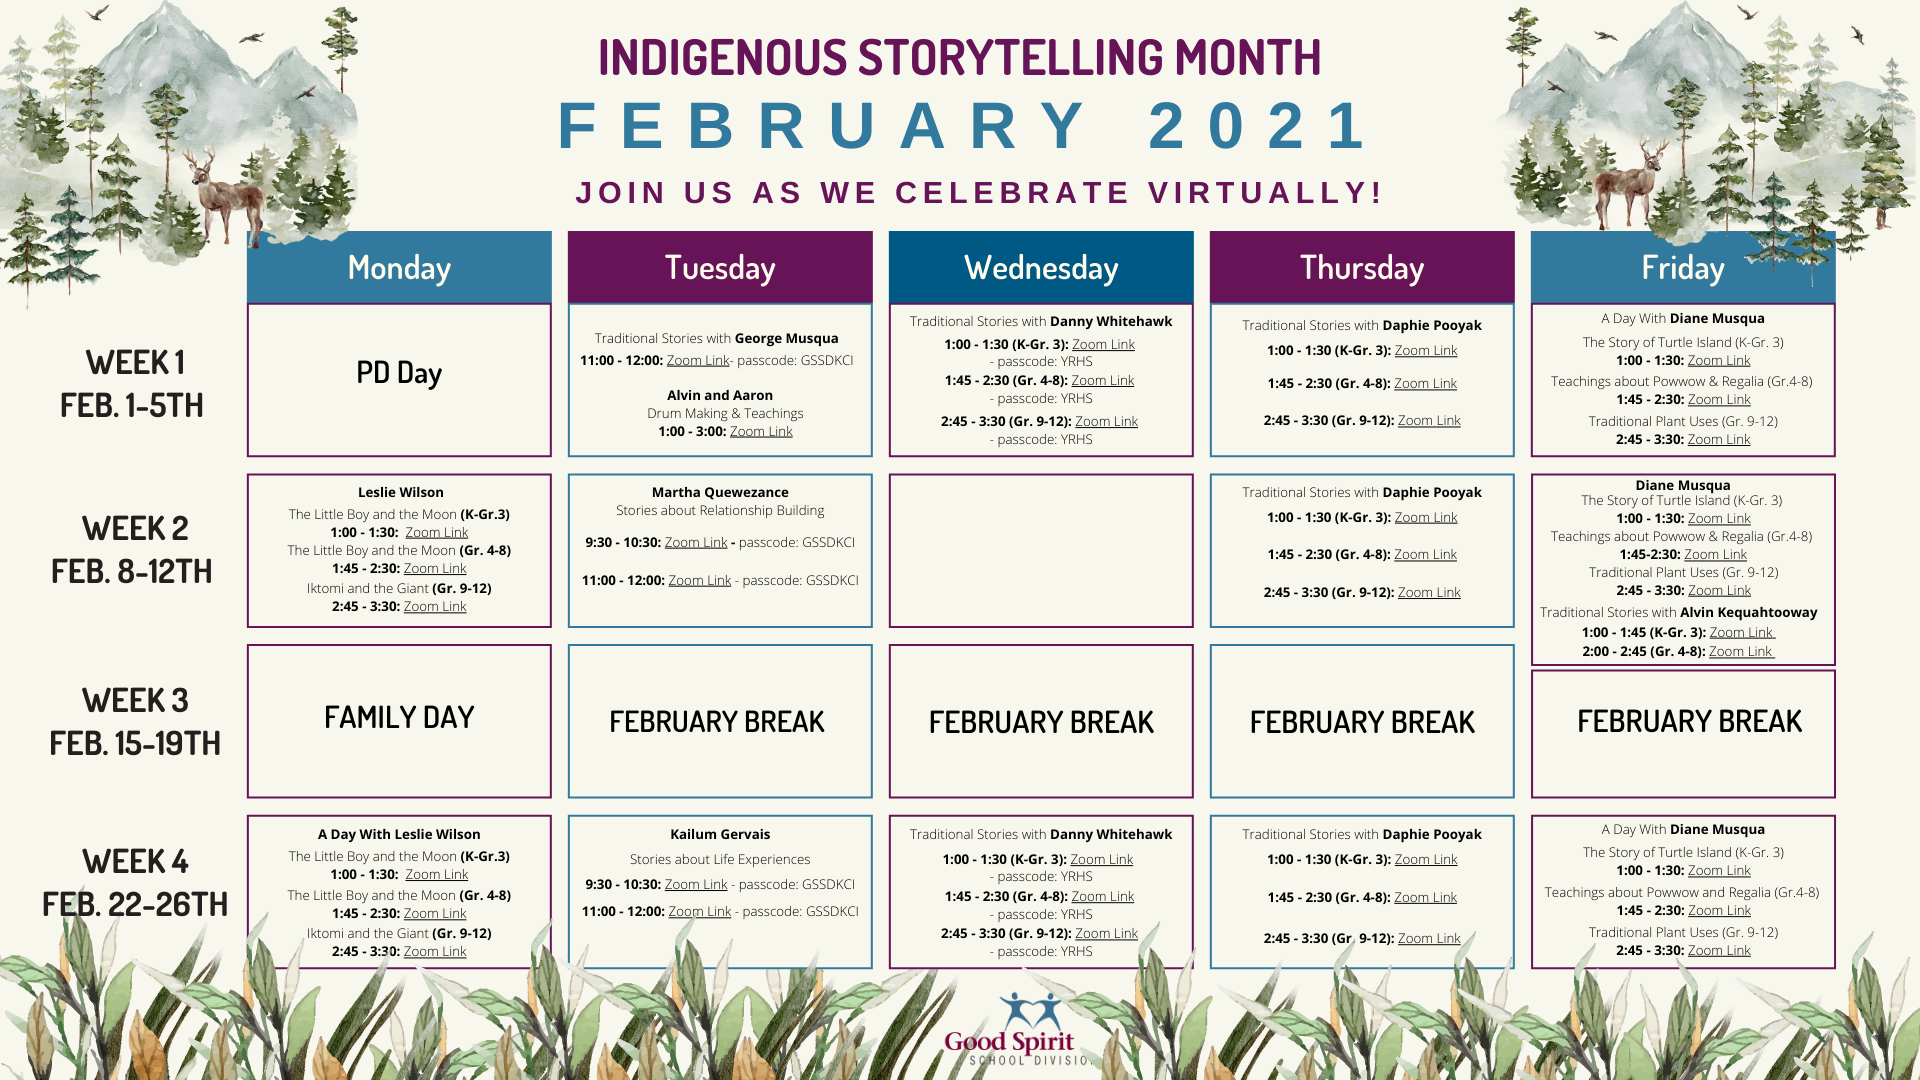 Indigenous Storytelling Month Feb. 2021.png